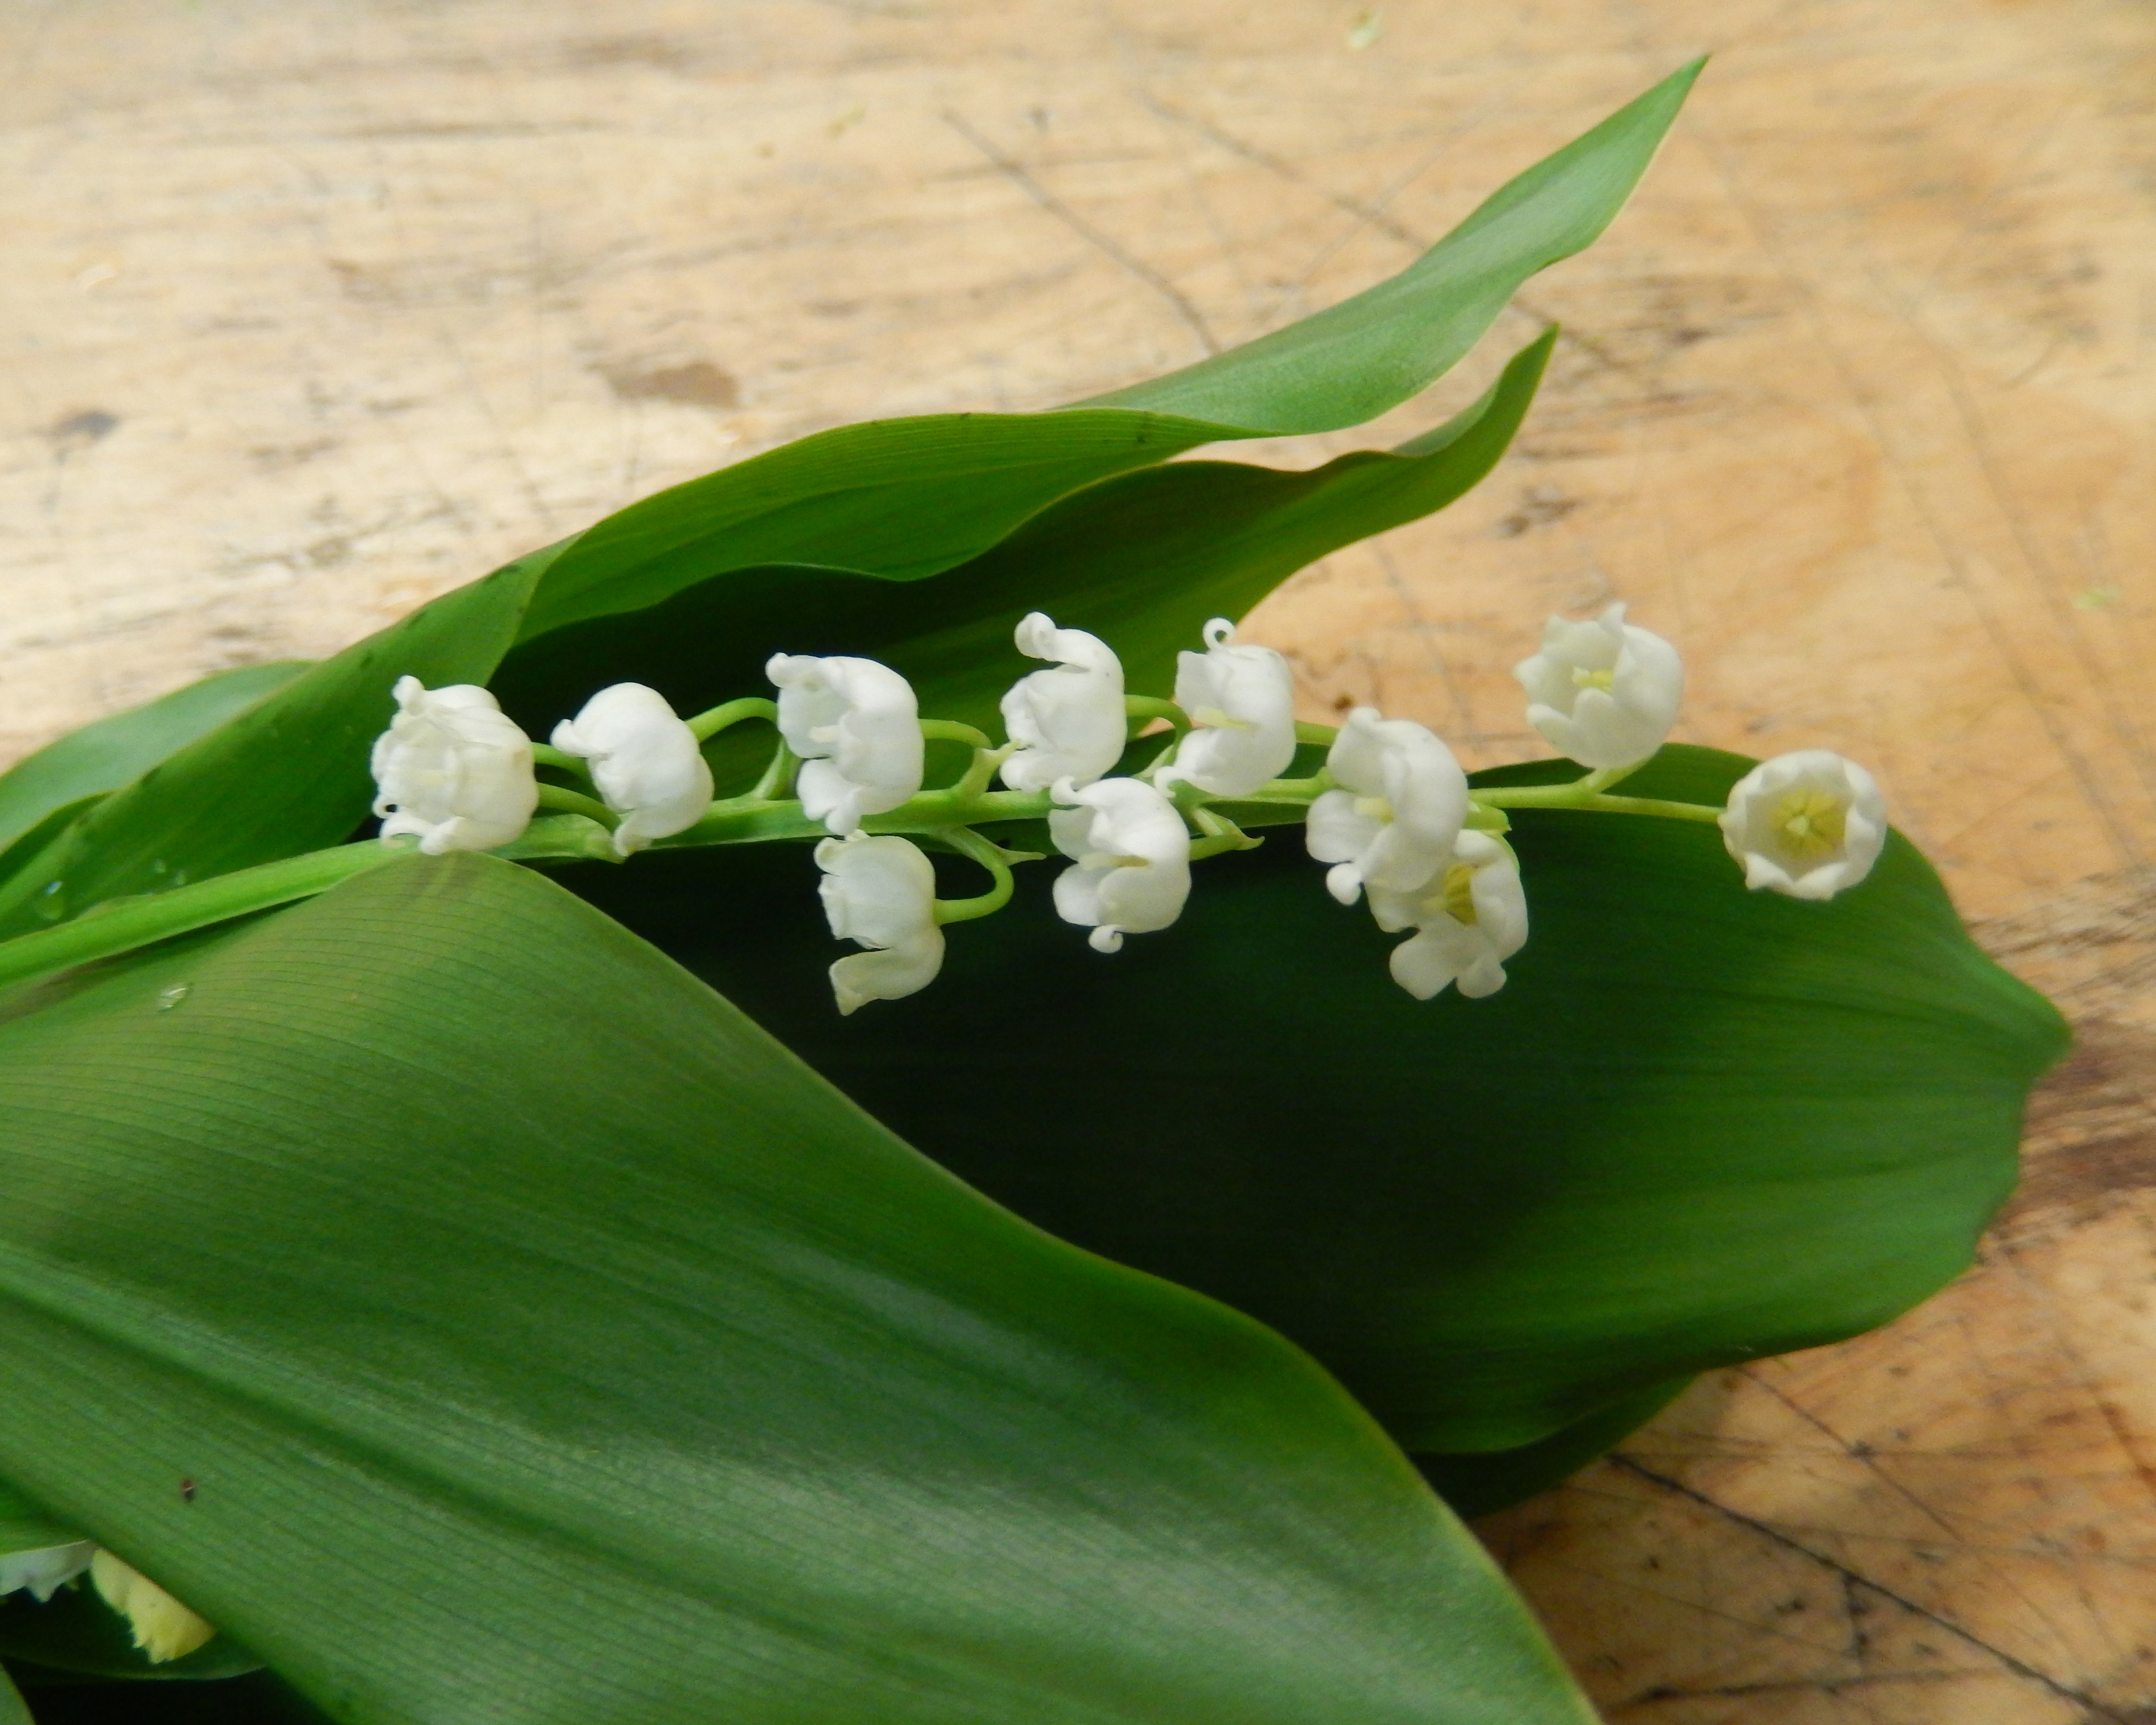 Lily of the valley blooming thoughts lily of the valley izmirmasajfo Gallery